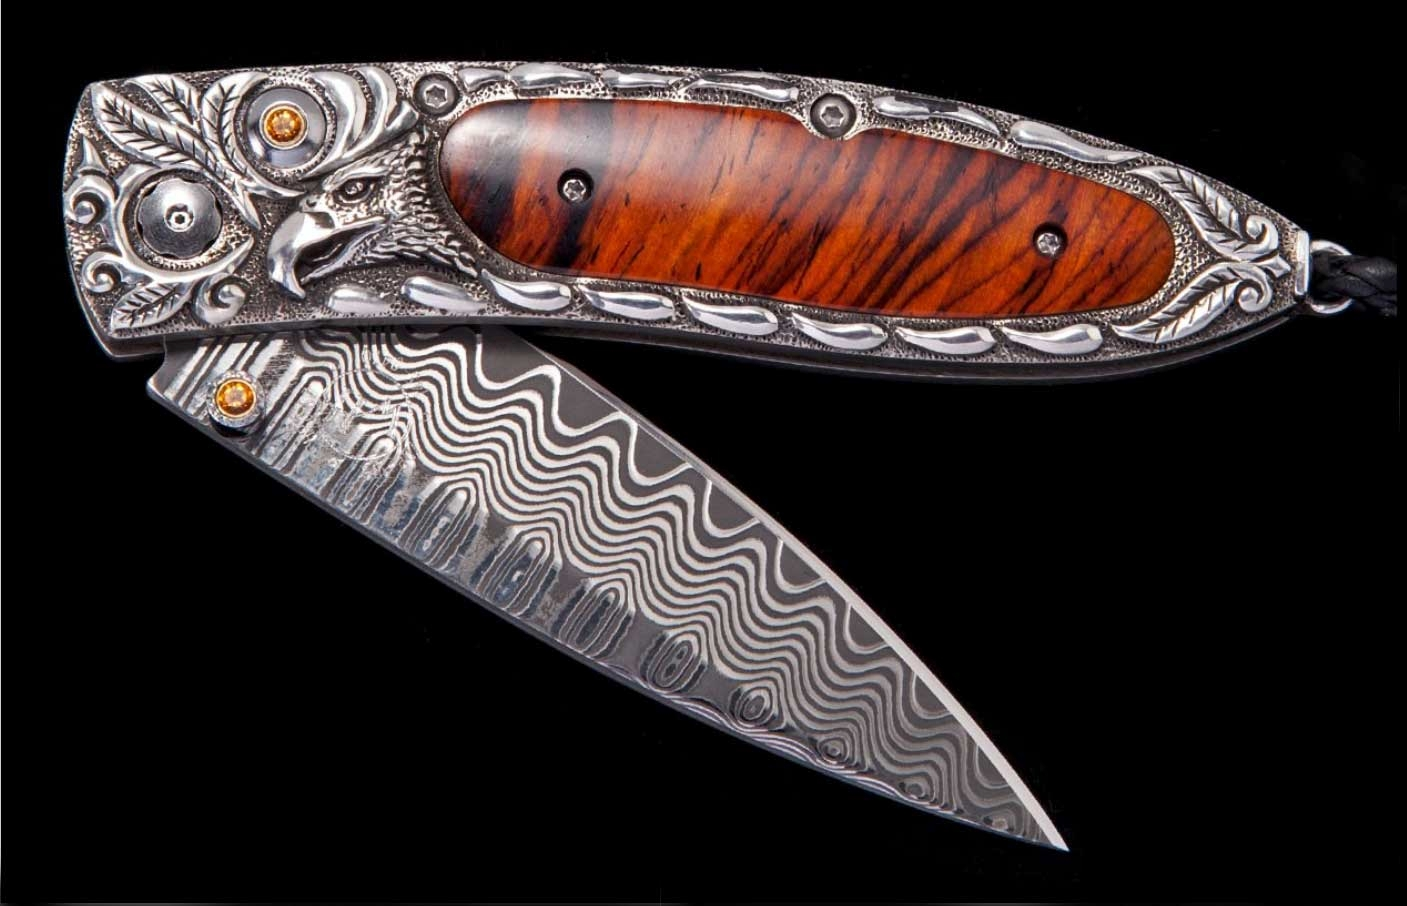 Monarch Sovereign Luxury Pocket Knife - William Henry Knives